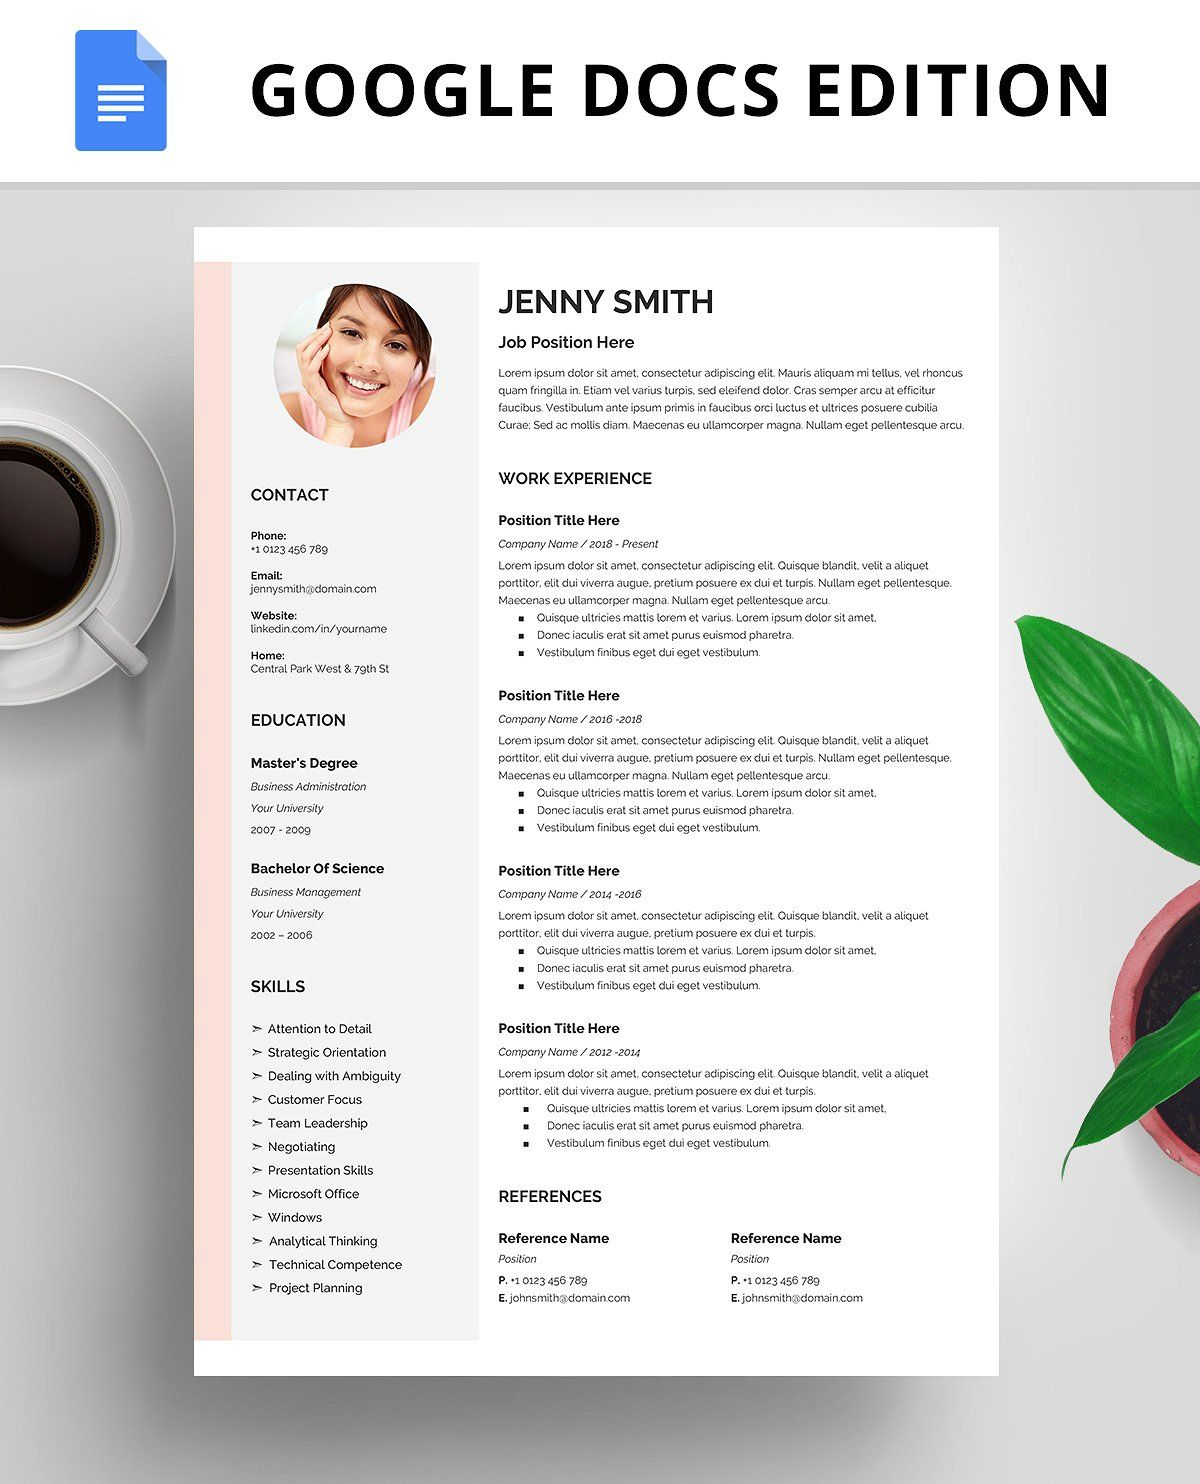 Resume Template, CV, Google Docs Resume template, Resume